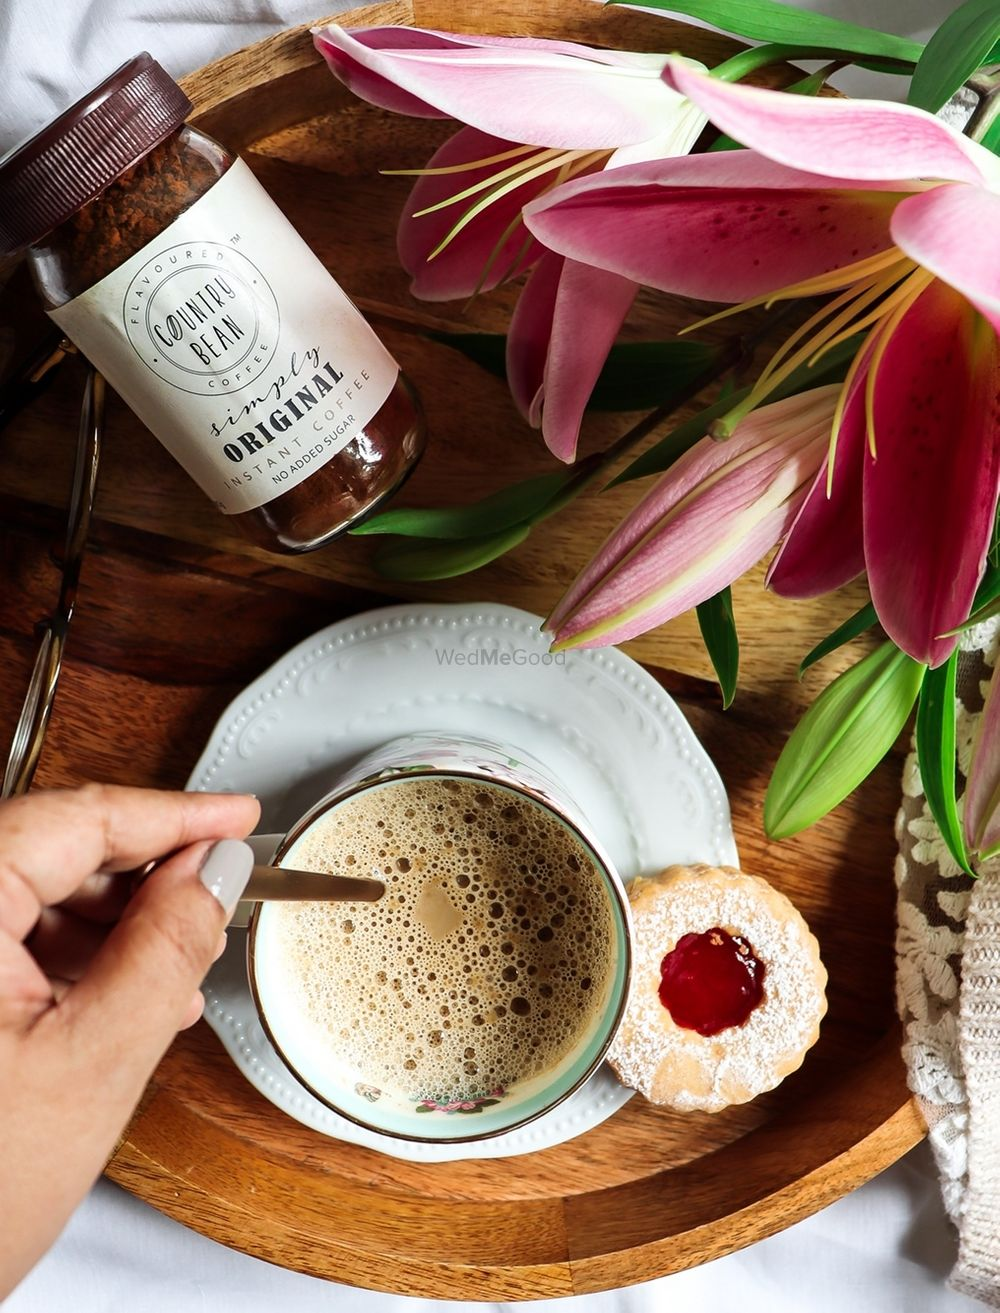 Photo From Lifestyle Images  - By Country Bean Coffee